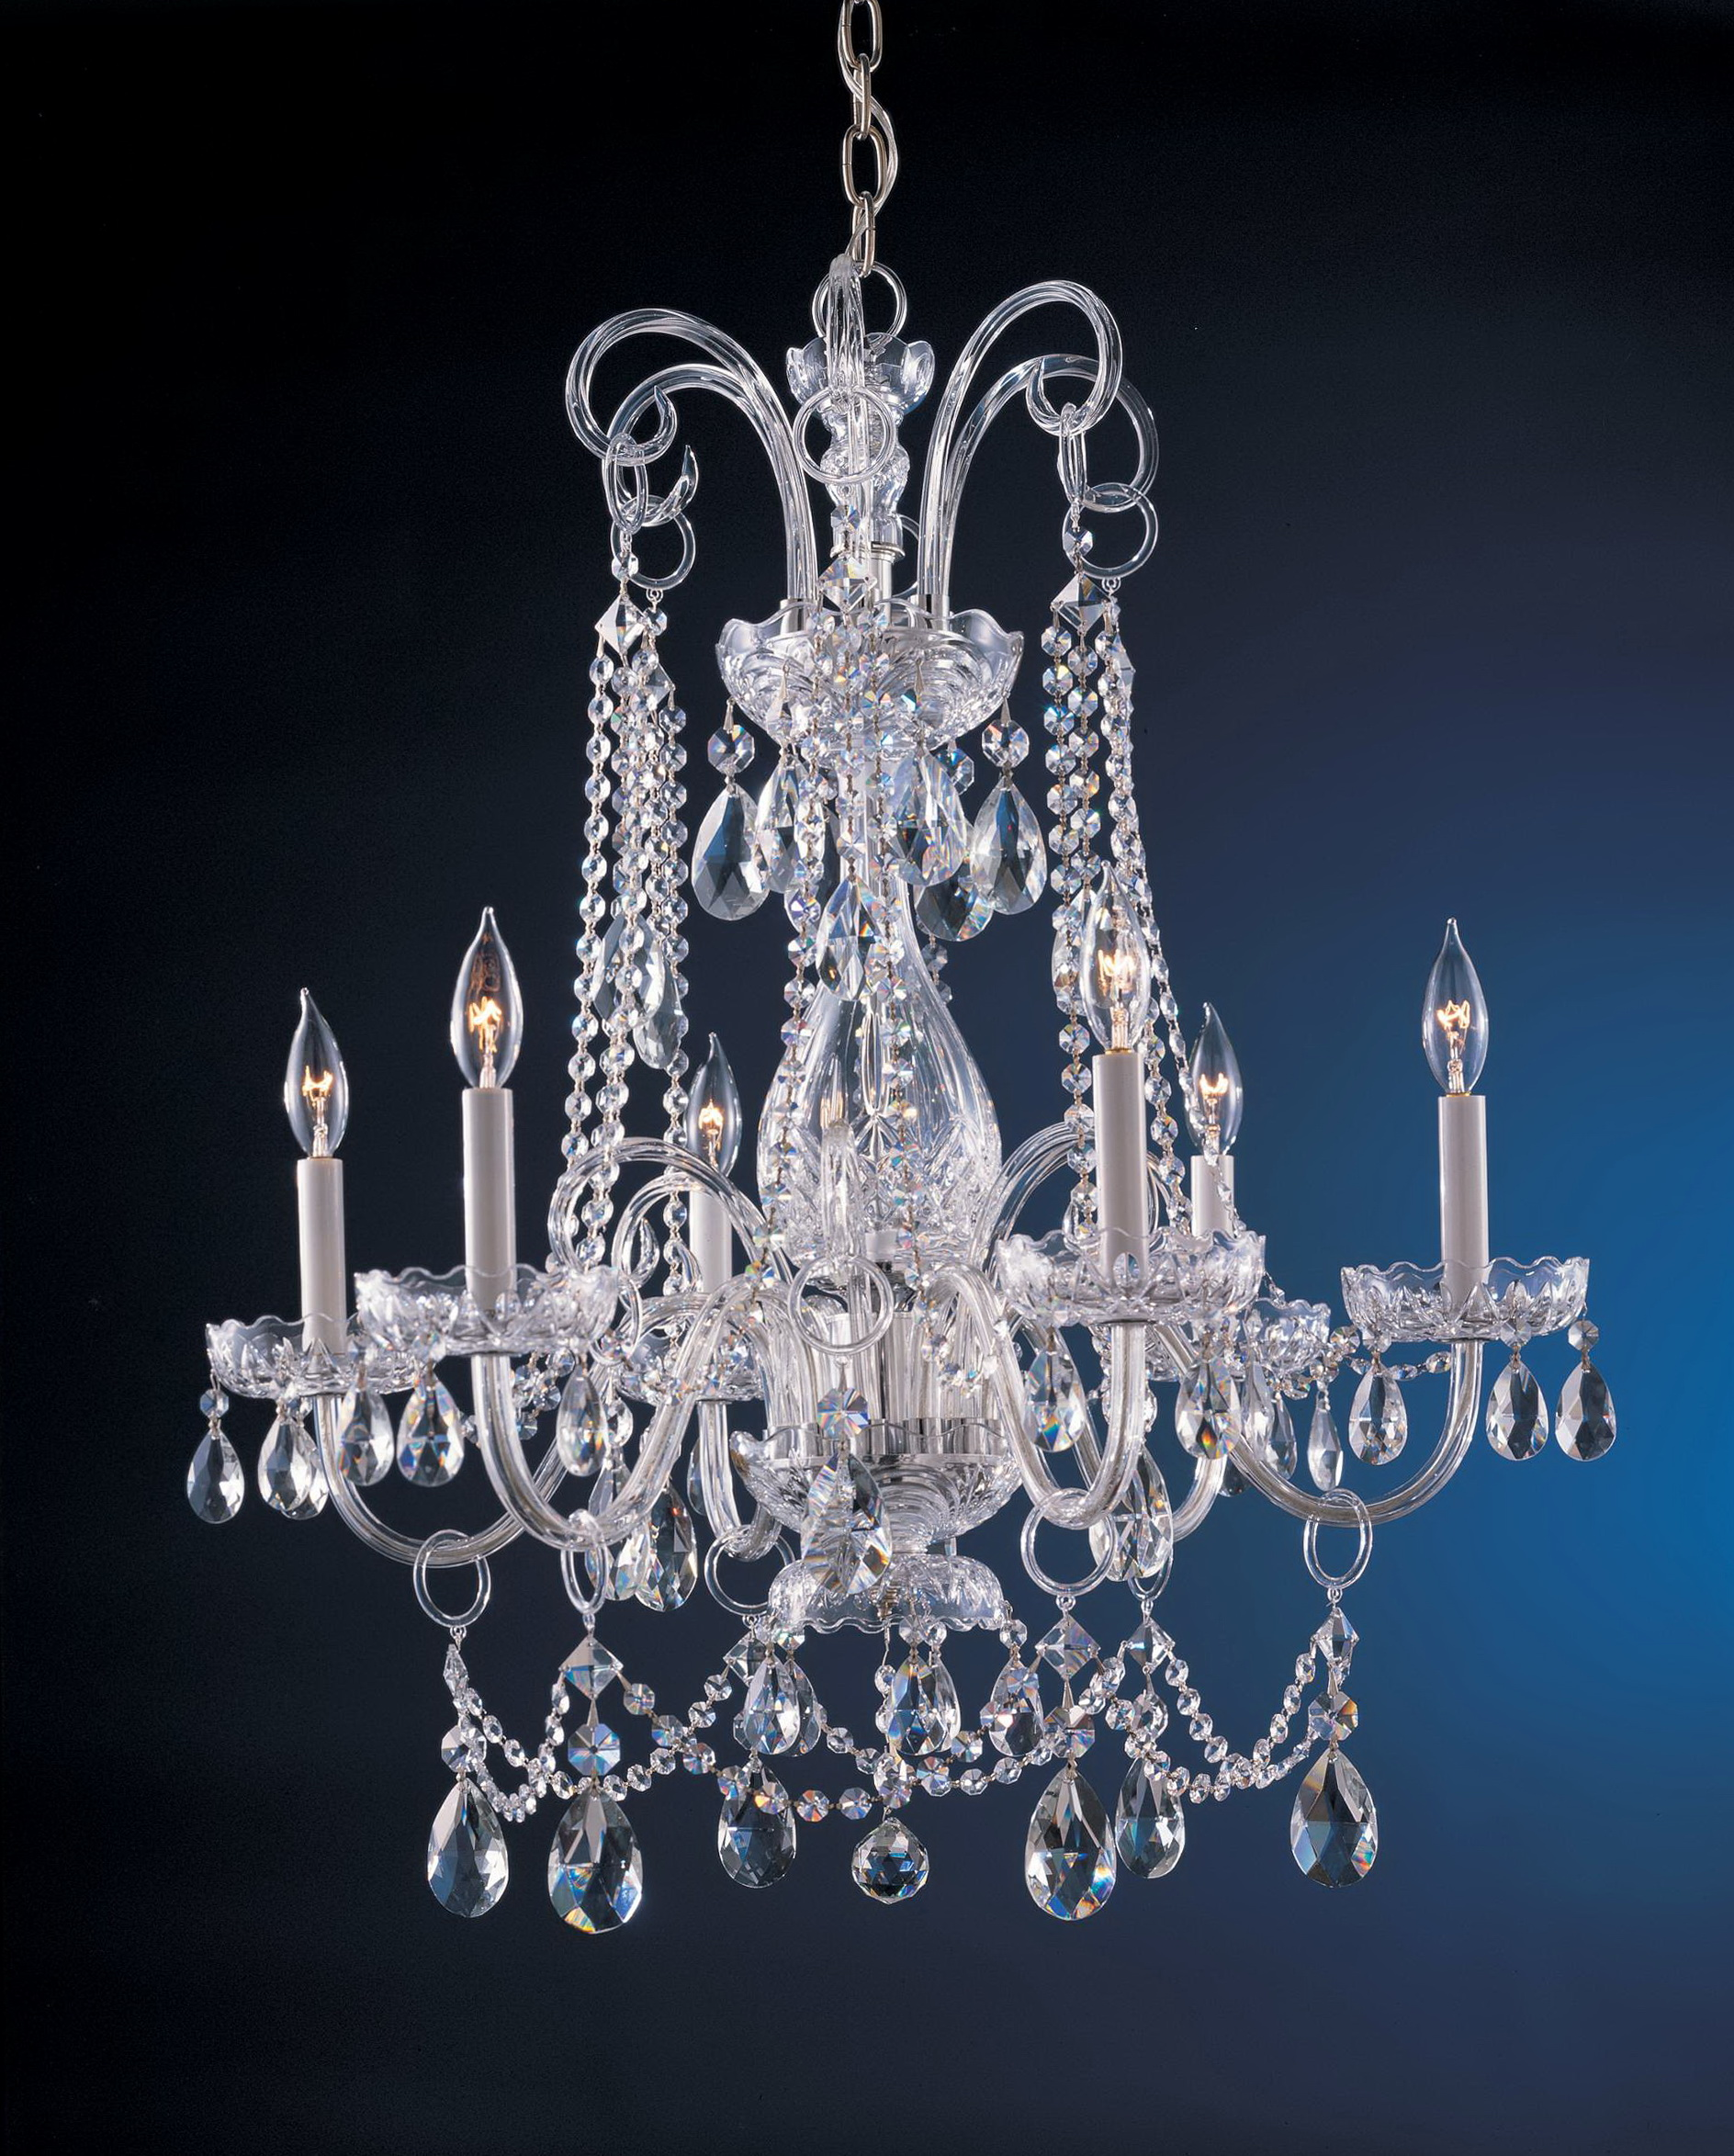 Cheap crystal chandeliers for sale home design ideas - Chandeliers on sale online ...